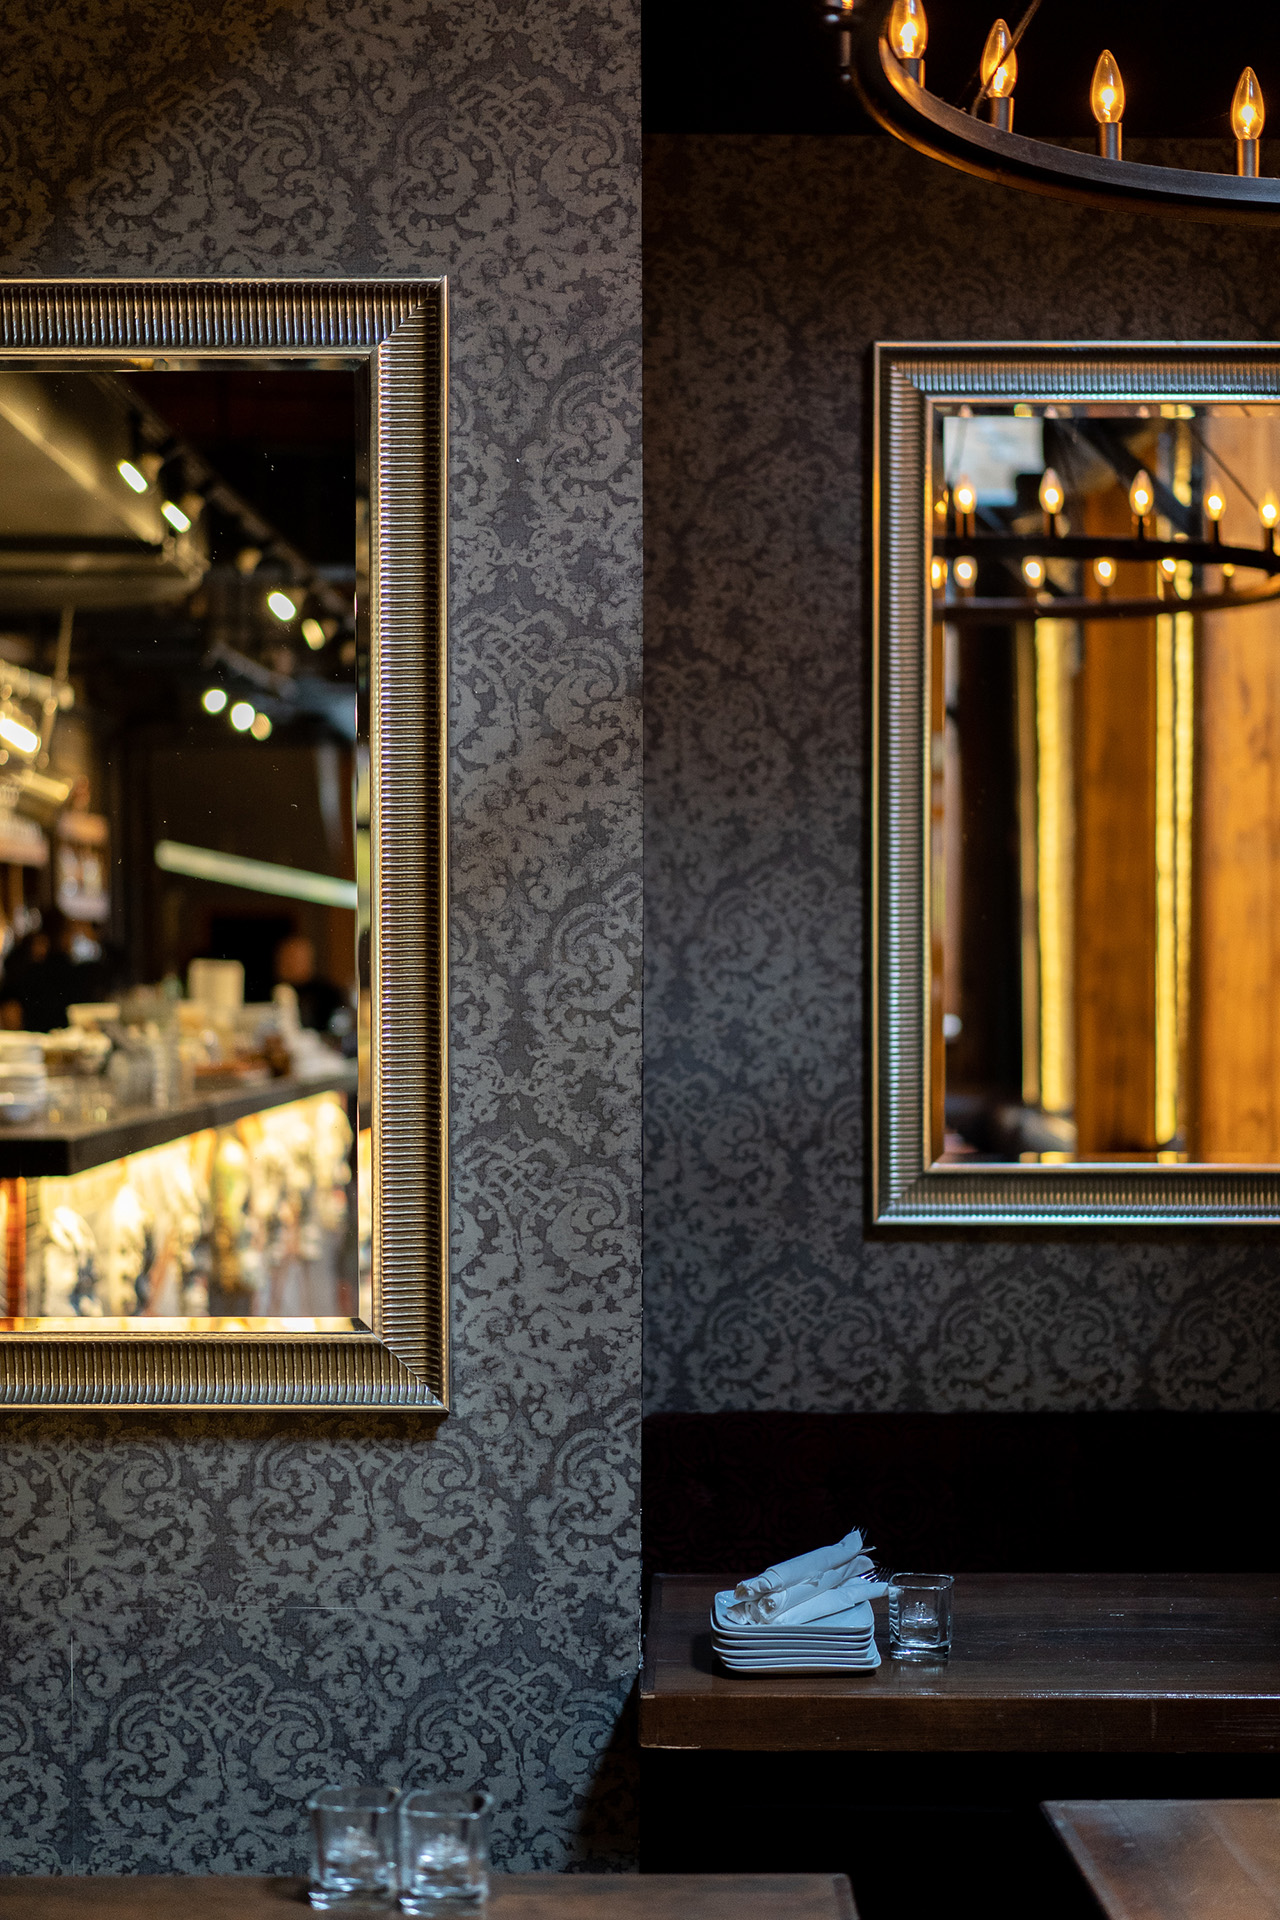 Dark, patterned wallpaper give the dining area at the back of a restaurant a mysterious touch.